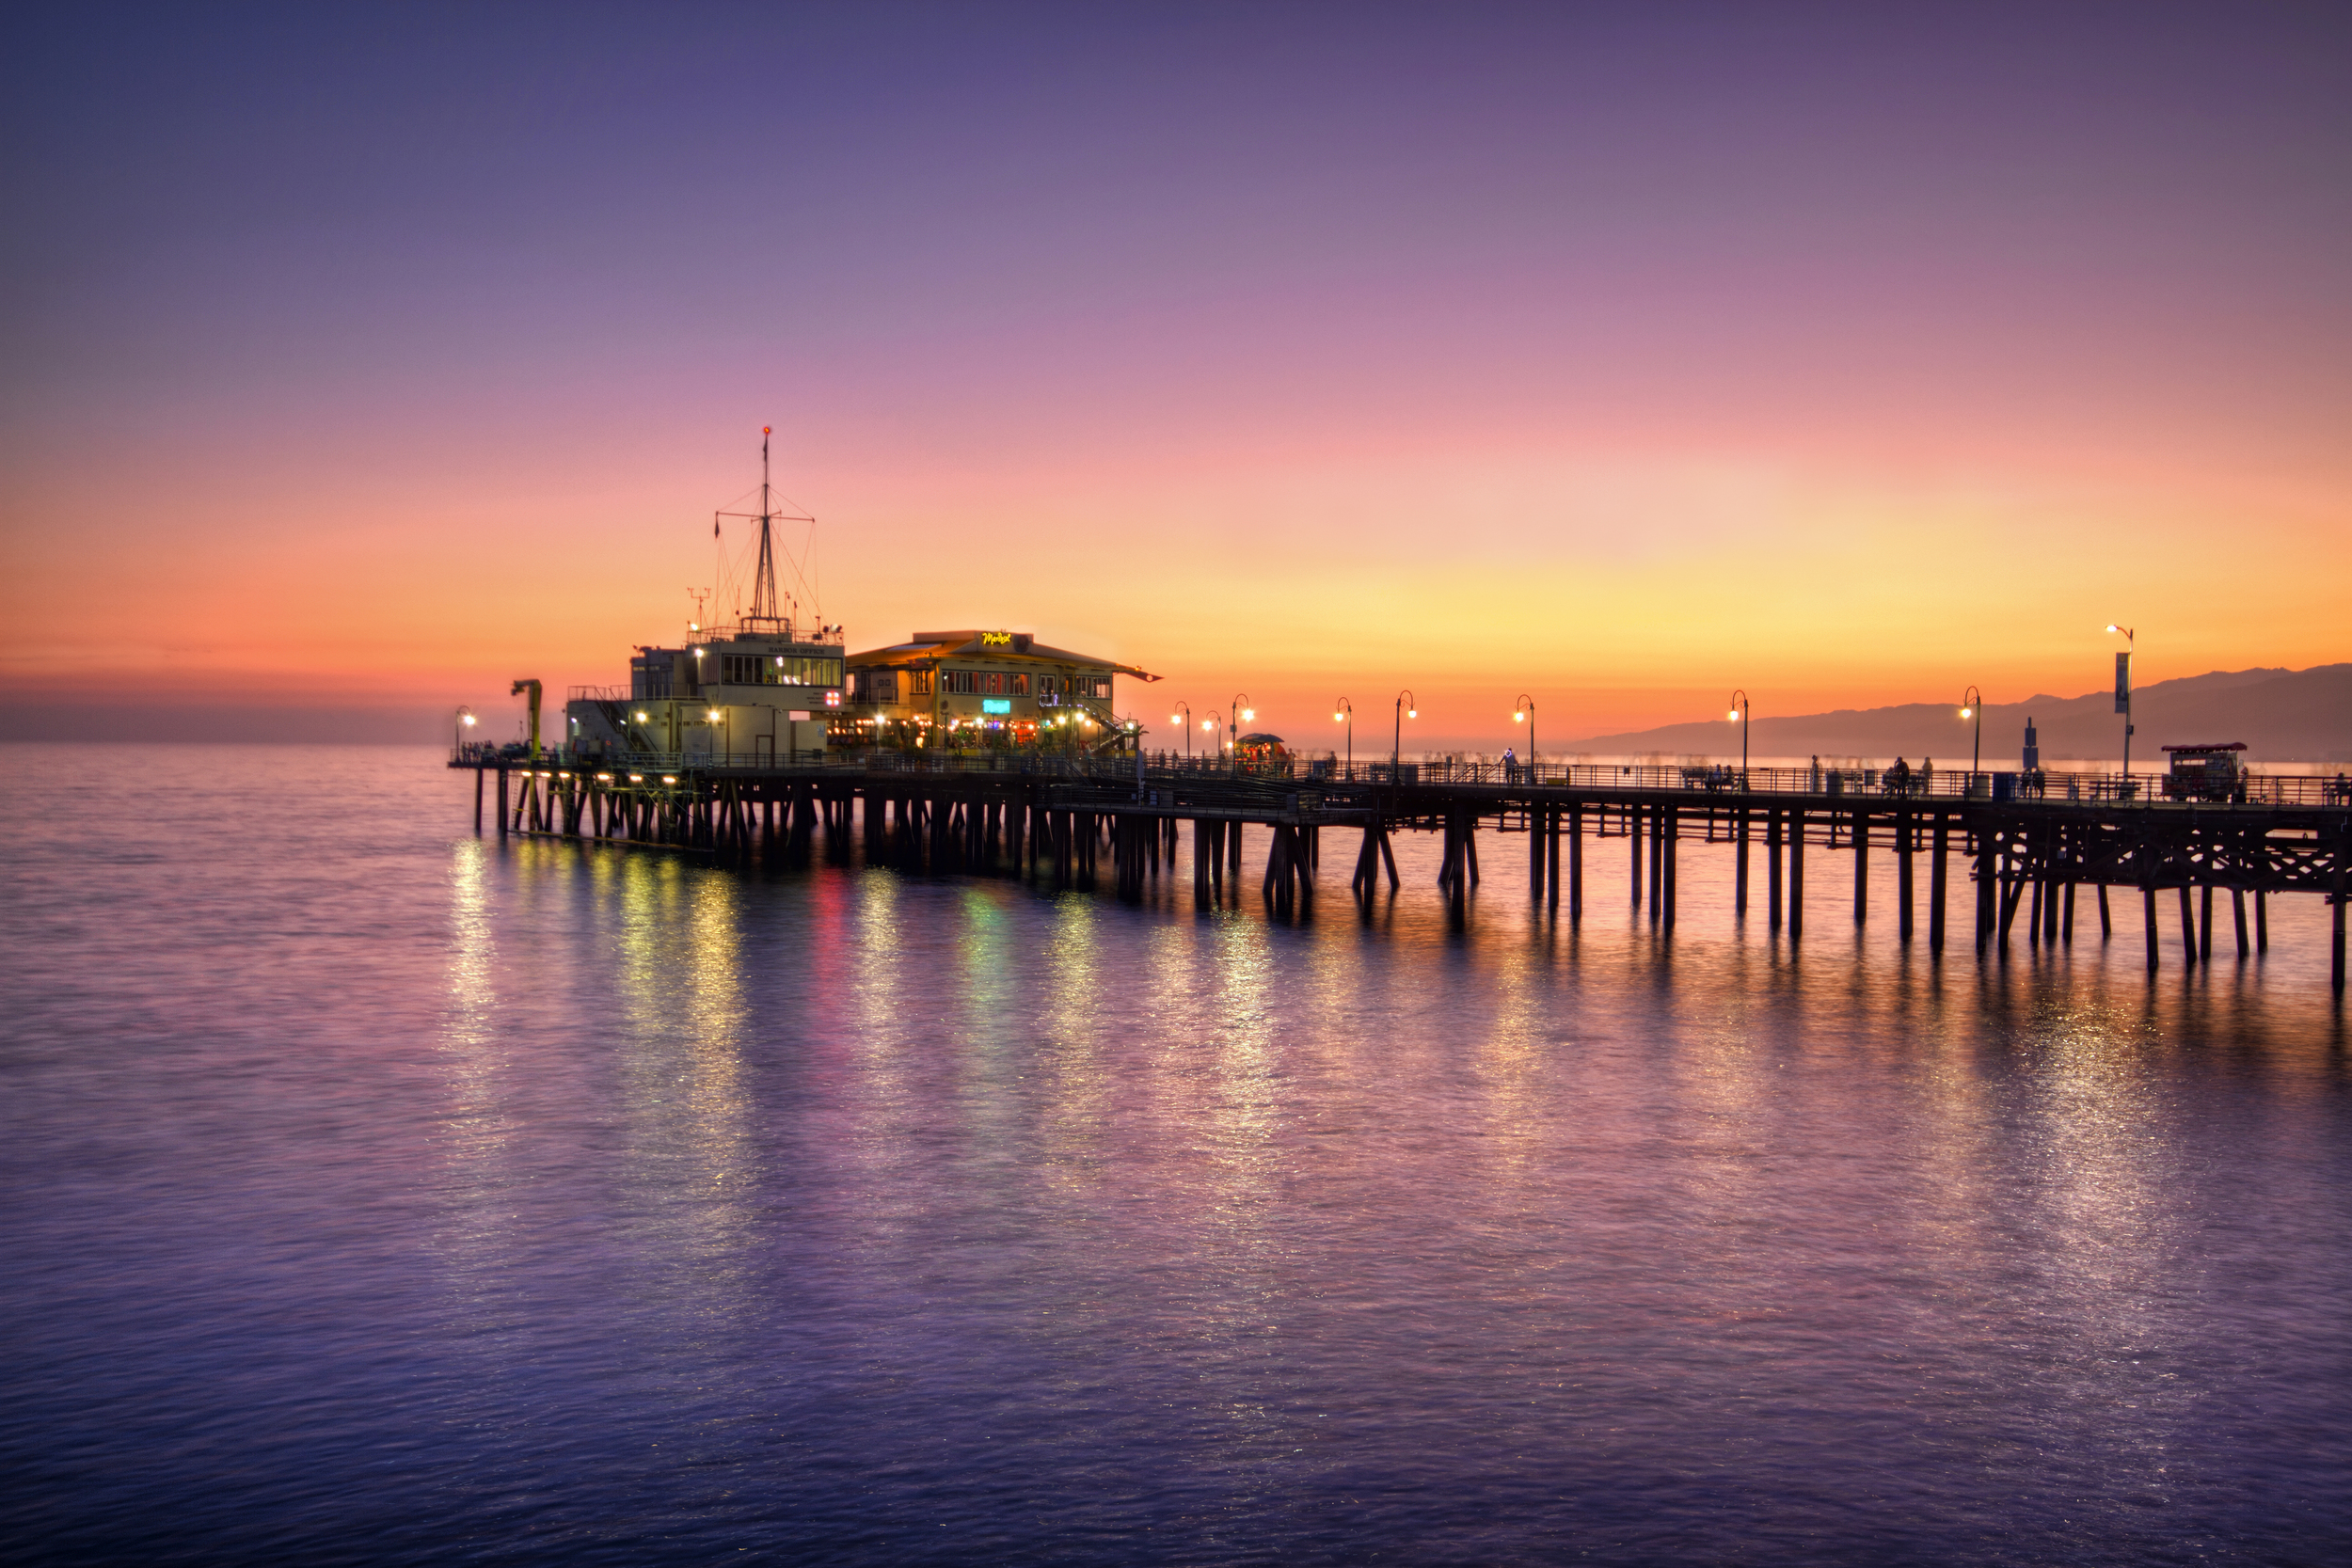 Pier at Sunset   Available in 16x20